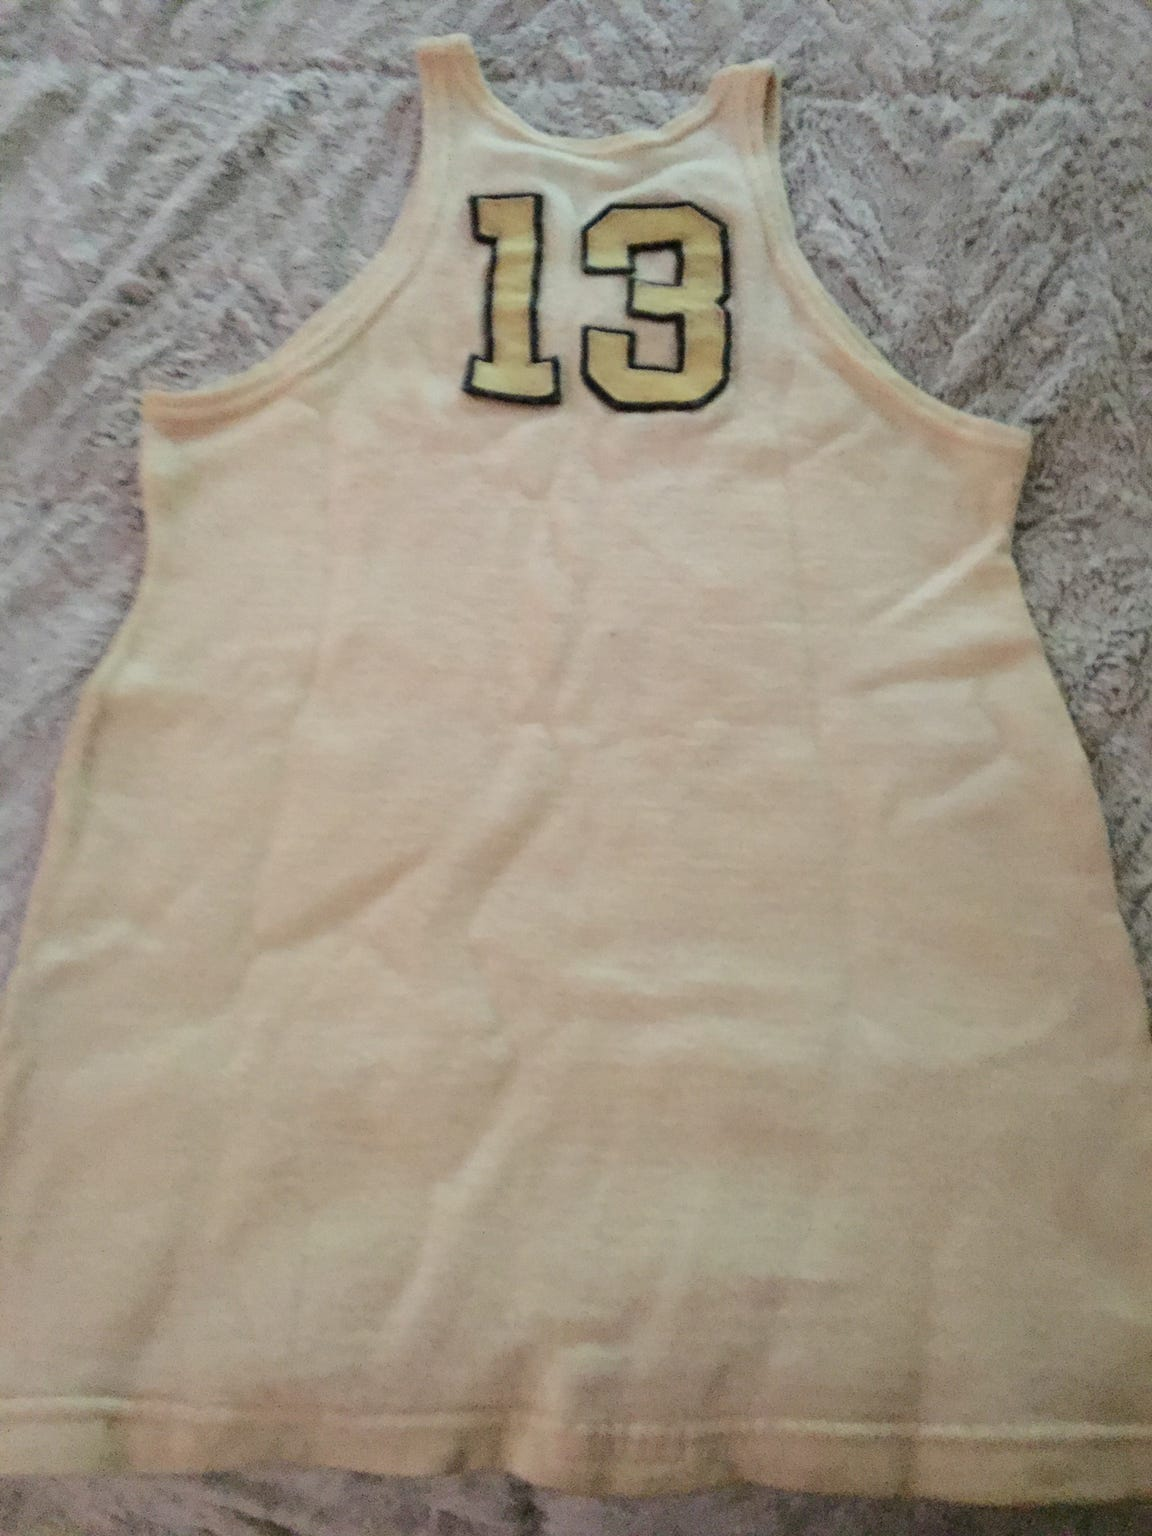 The back of the 1930-32 era John Wooden jersey owned